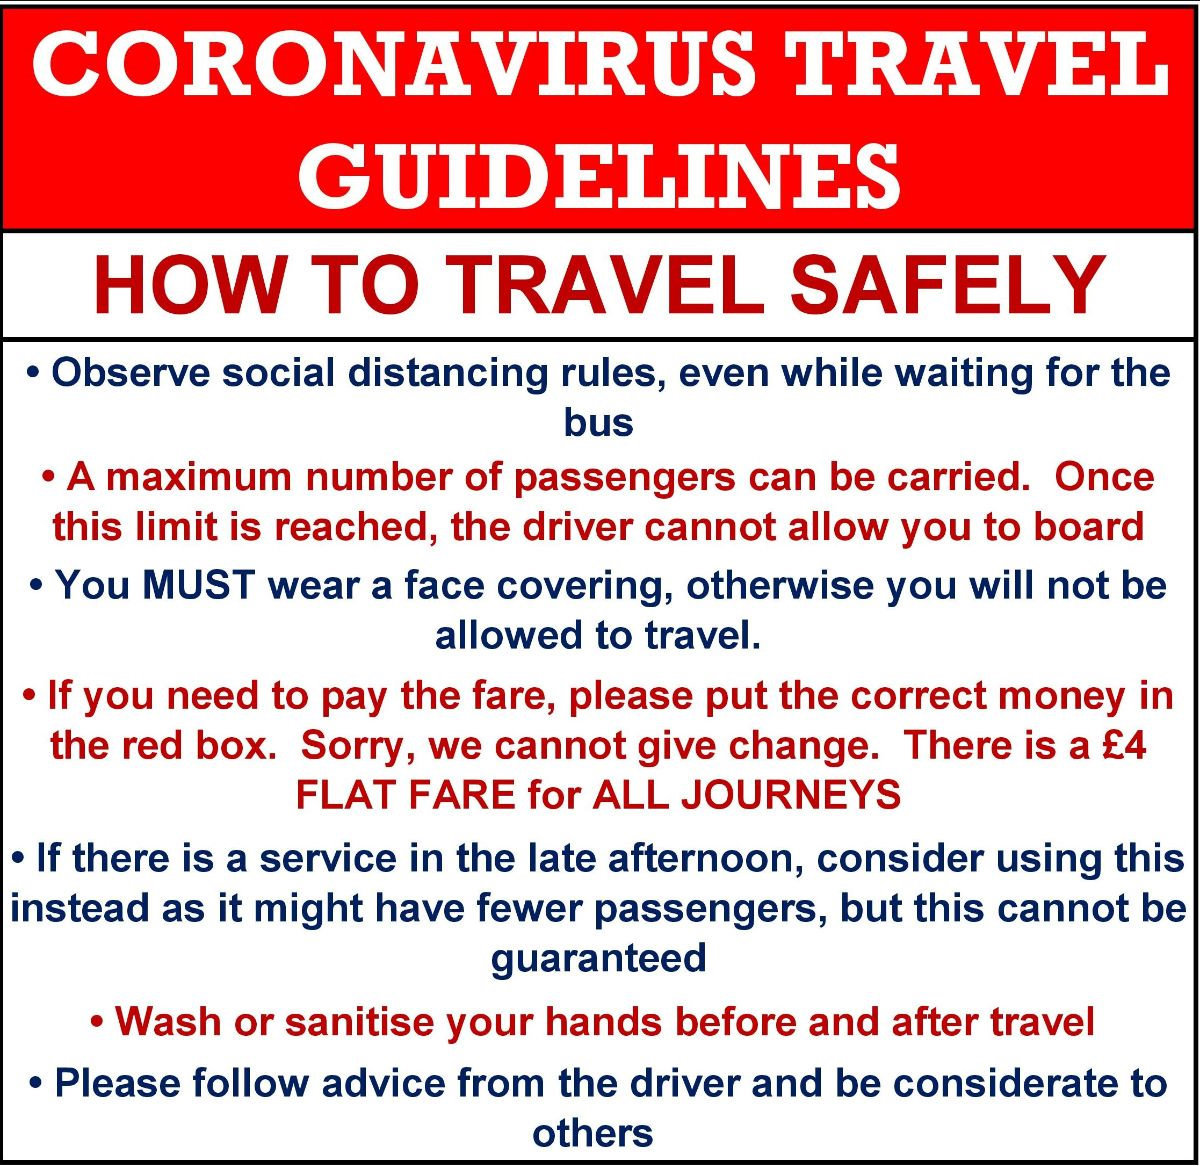 Coronavirus travel guidelines